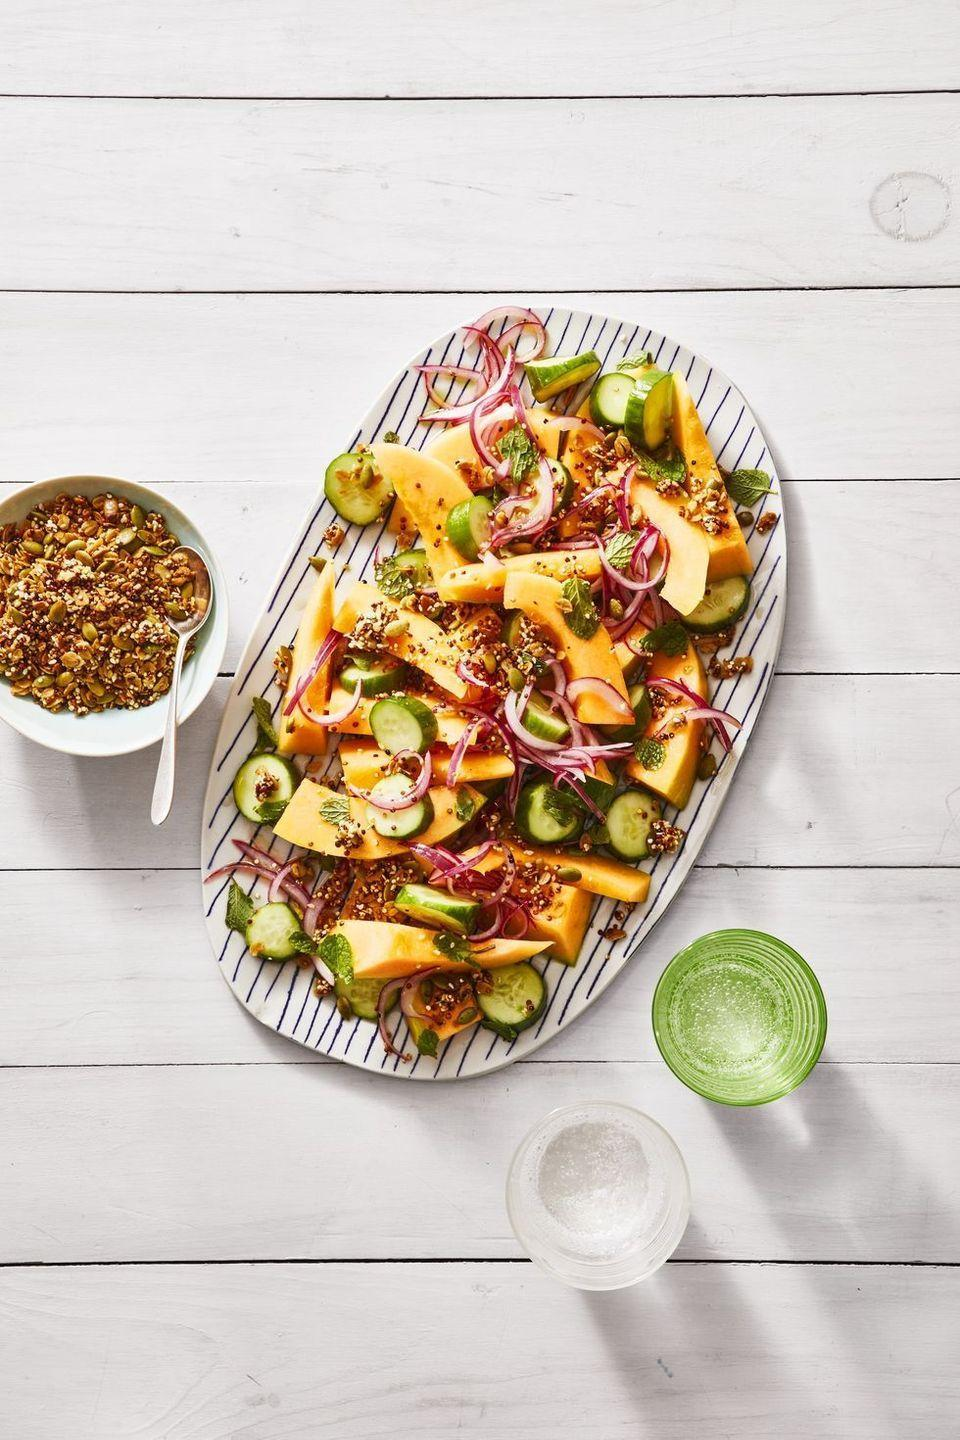 """<p>Refreshing fruit salad gets a makeover with the addition of crunchy homemade granola.</p><p><em><a href=""""https://www.goodhousekeeping.com/food-recipes/a27530675/cucumber-and-cantaloupe-salad-with-savory-quinoa-granola-recipe/"""" rel=""""nofollow noopener"""" target=""""_blank"""" data-ylk=""""slk:Get the recipe for Cucumber and Cantaloupe Salad with Savory Quinoa Granola »"""" class=""""link rapid-noclick-resp"""">Get the recipe for Cucumber and Cantaloupe Salad with Savory Quinoa Granola »</a></em></p>"""